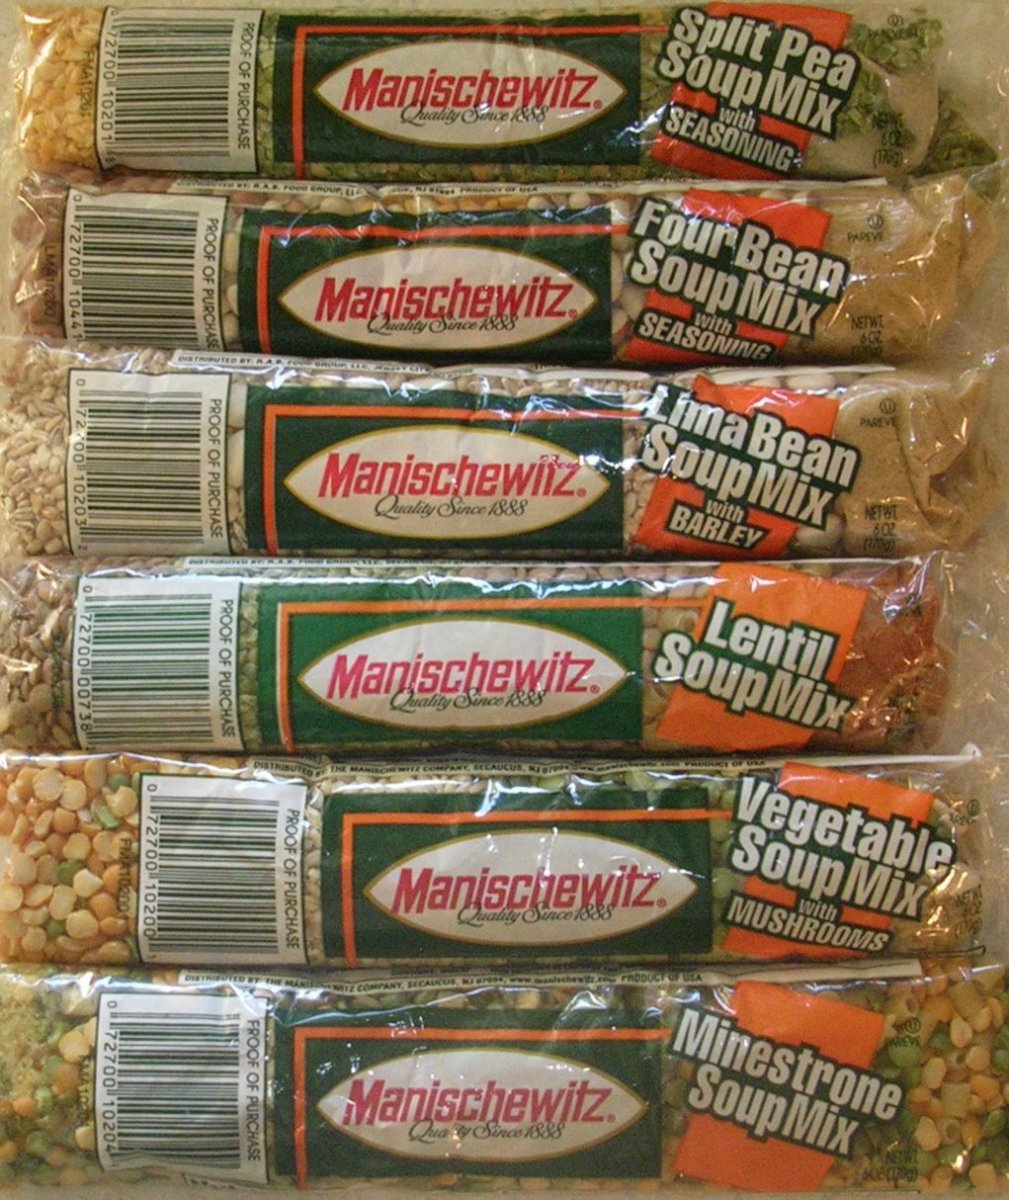 Your signature soup starters, Manischewitz cello soup mixes.